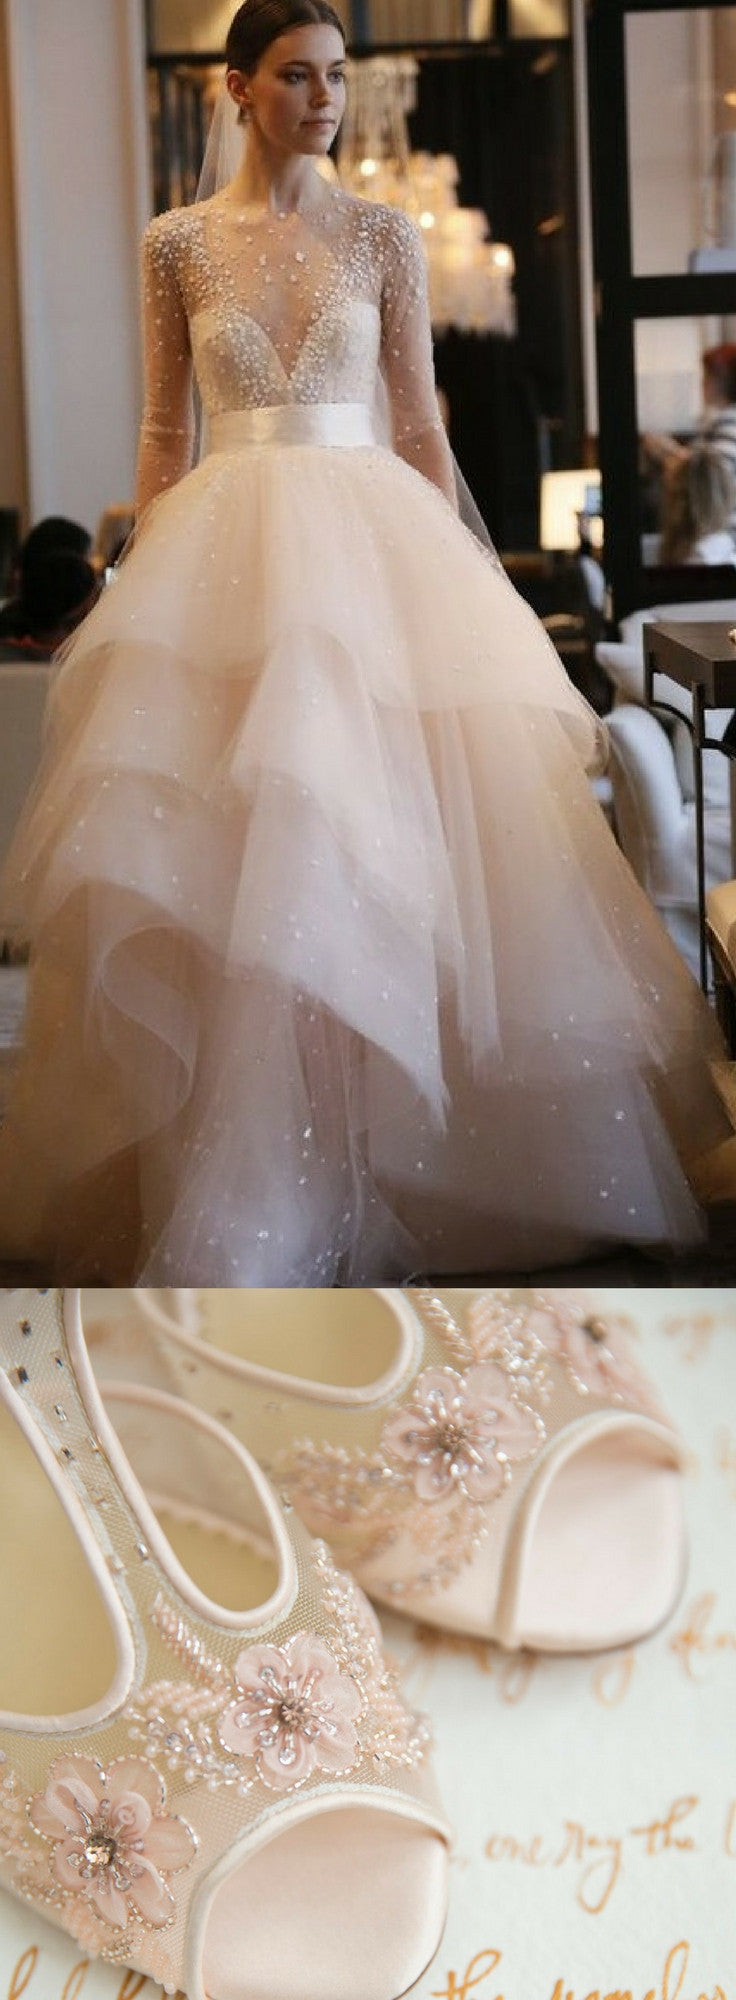 Bella Belle Shoes Paloma Blush and Monique Lhullier wedding dress Aviva